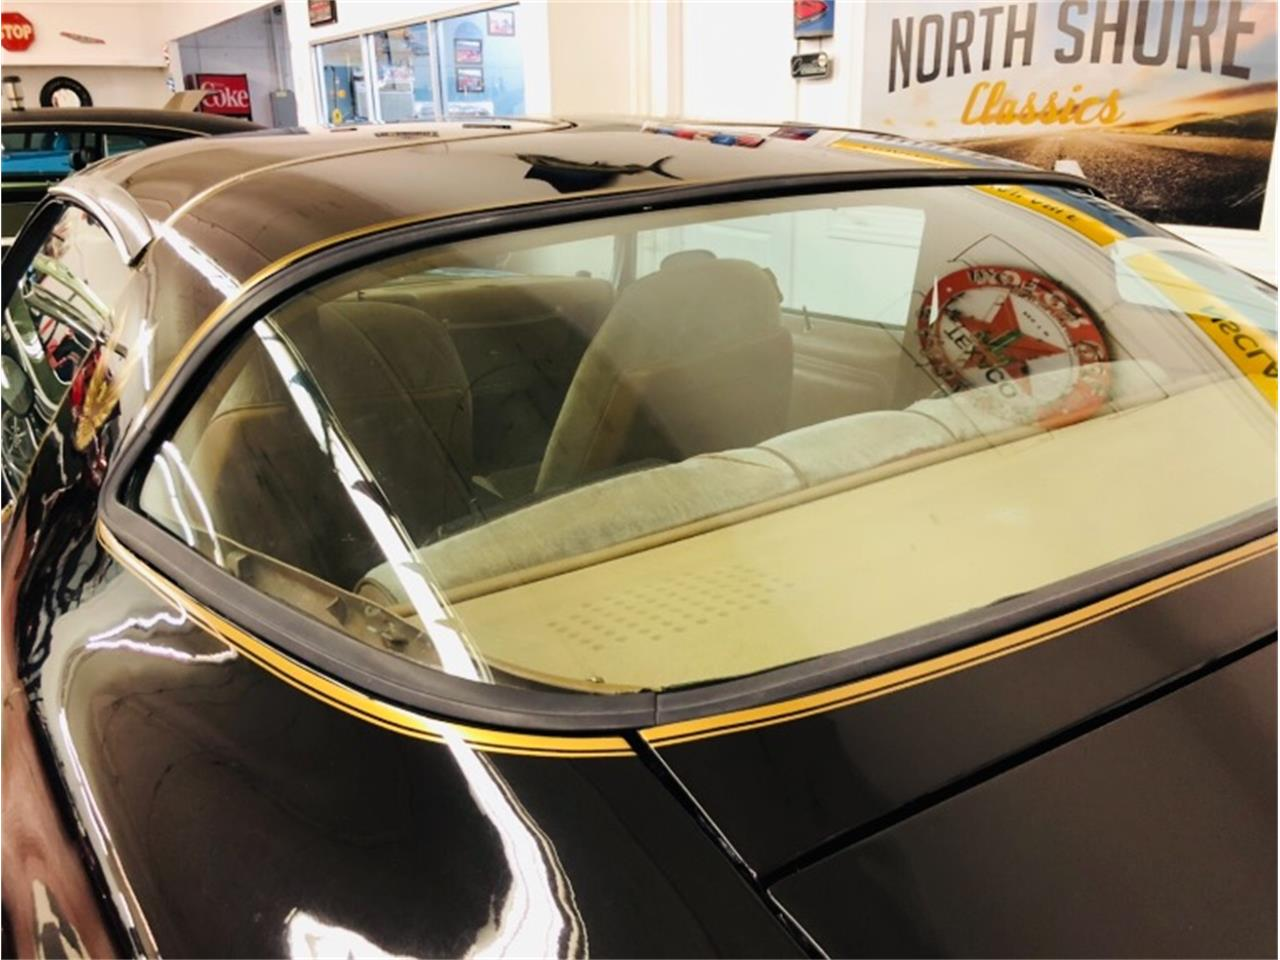 Large Picture of '79 Pontiac Firebird Trans Am located in Mundelein Illinois - $17,995.00 Offered by North Shore Classics - Q92C